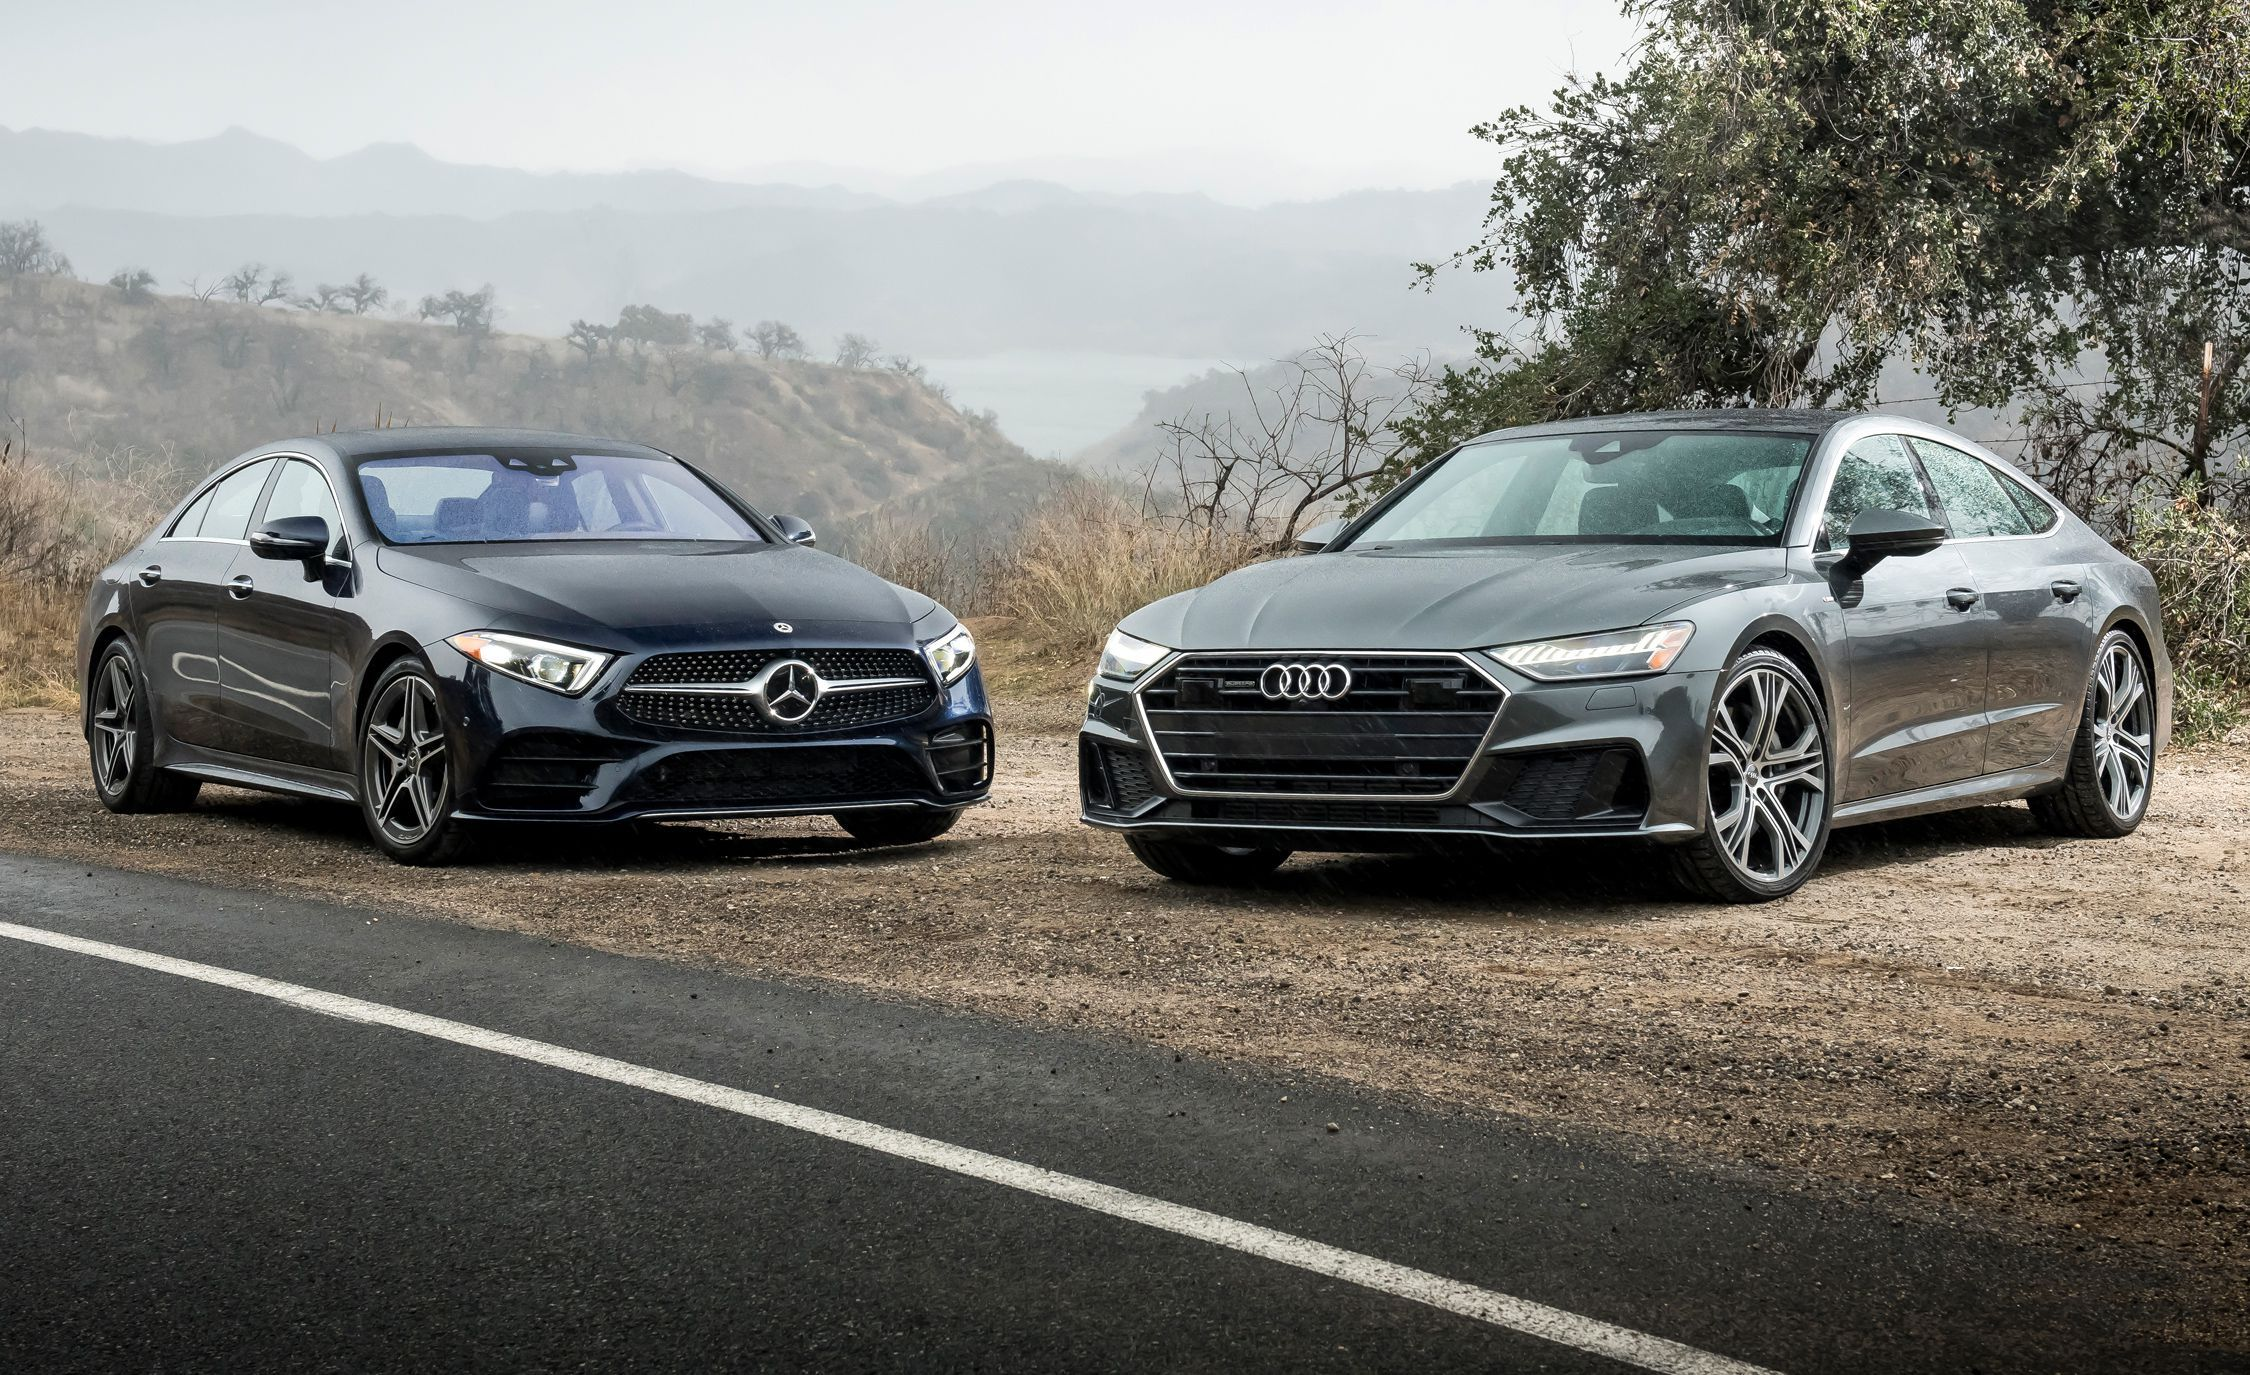 2019 Audi A7 Vs 2019 Mercedes Benz Cls450 4matic Luxury Coupe Battle